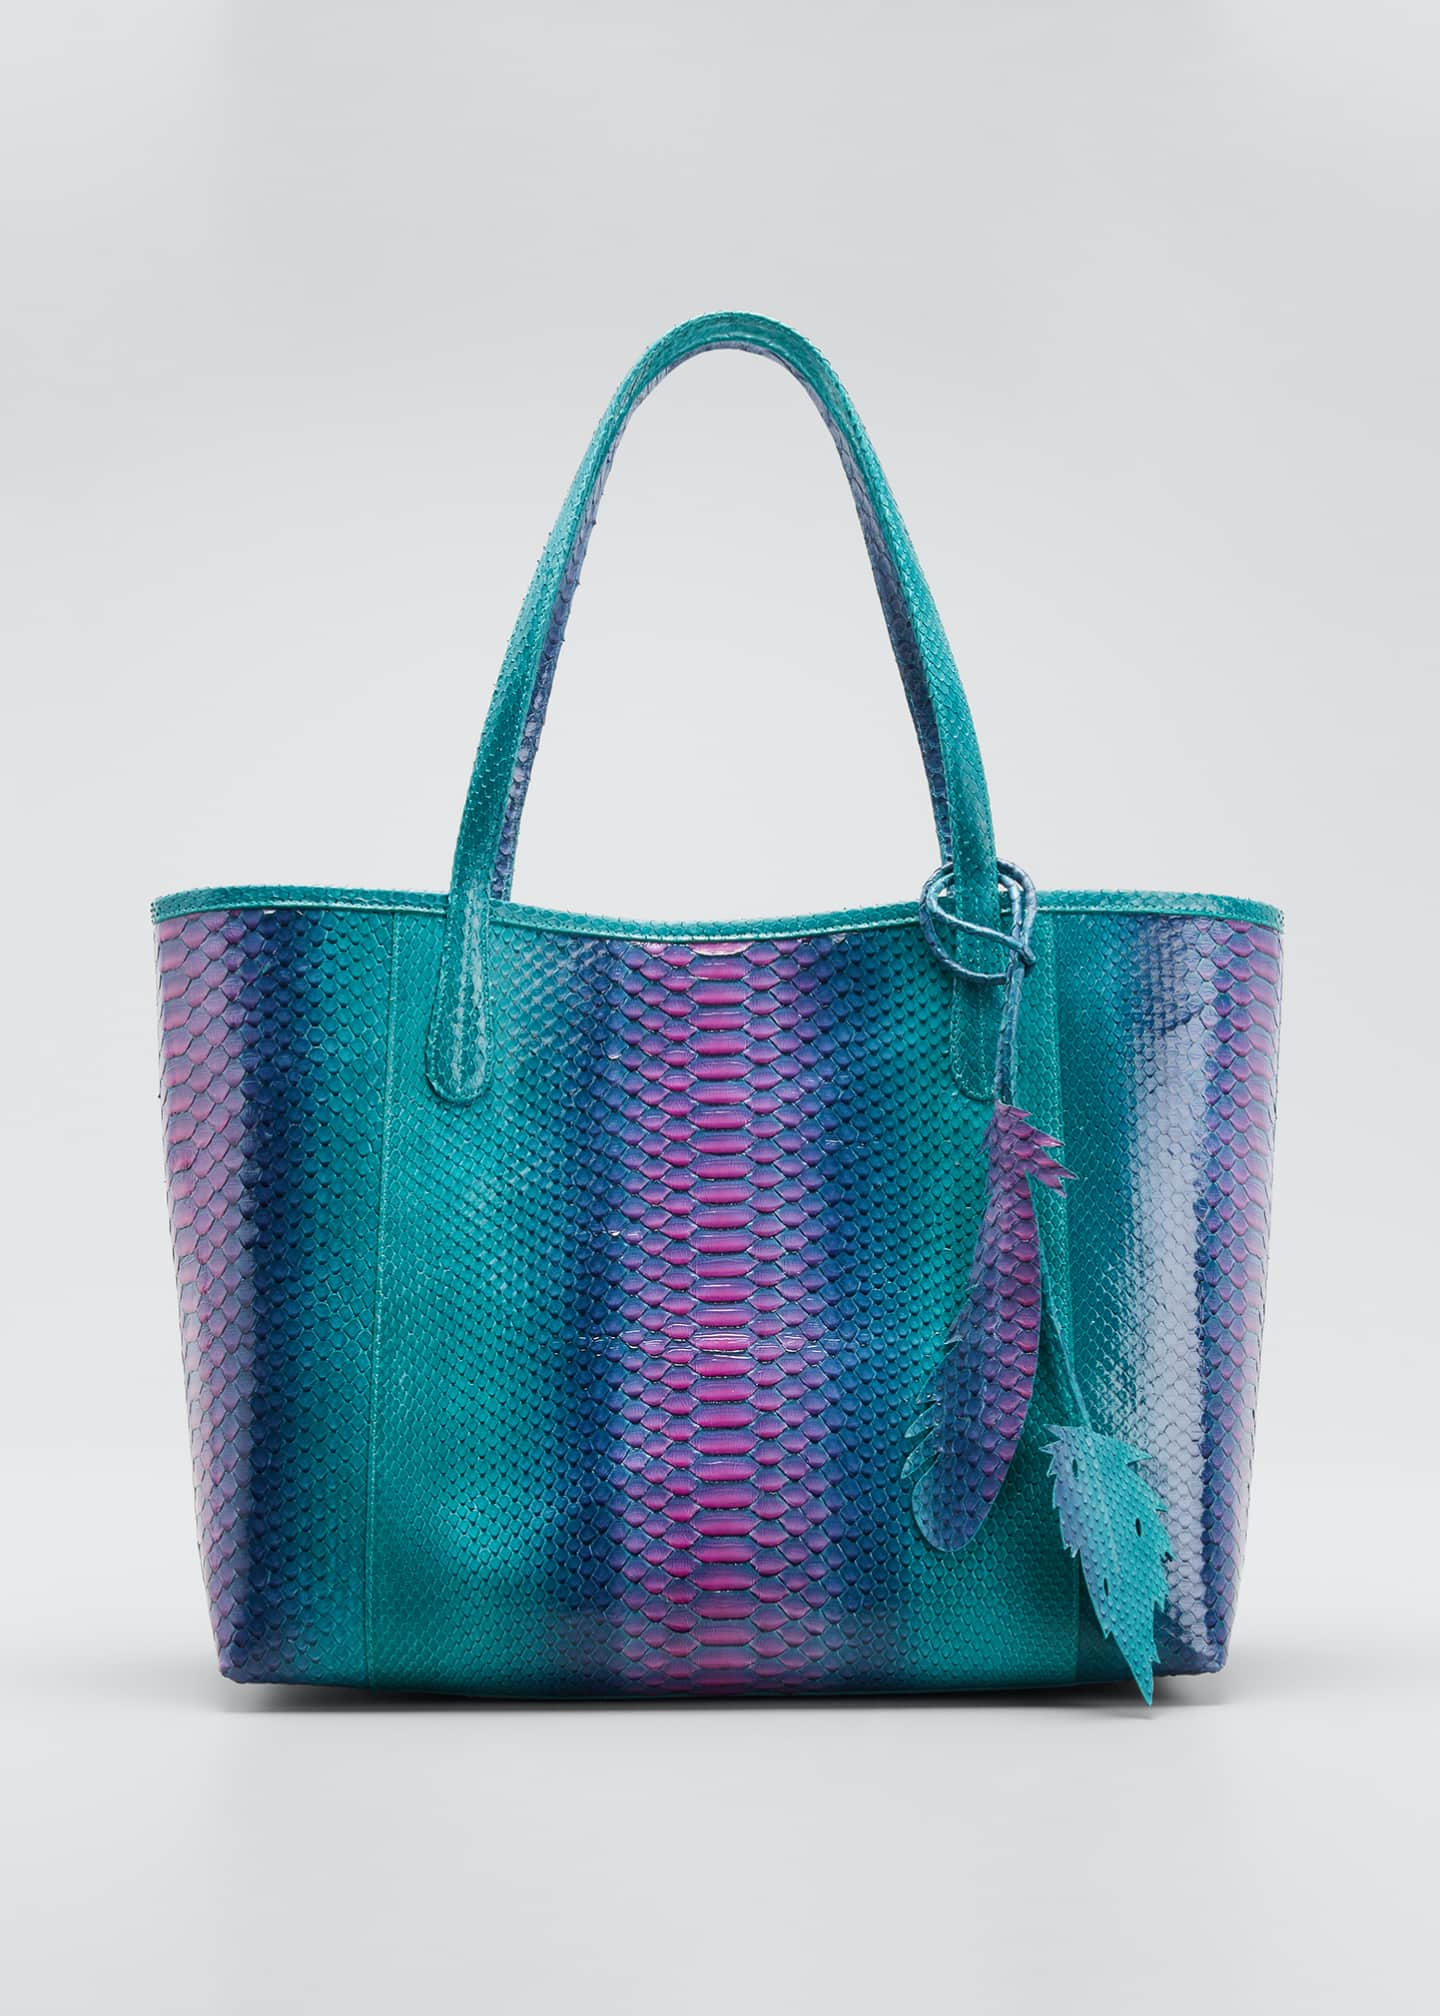 Nancy Gonzalez Erika Iridescent Python Tote Bag